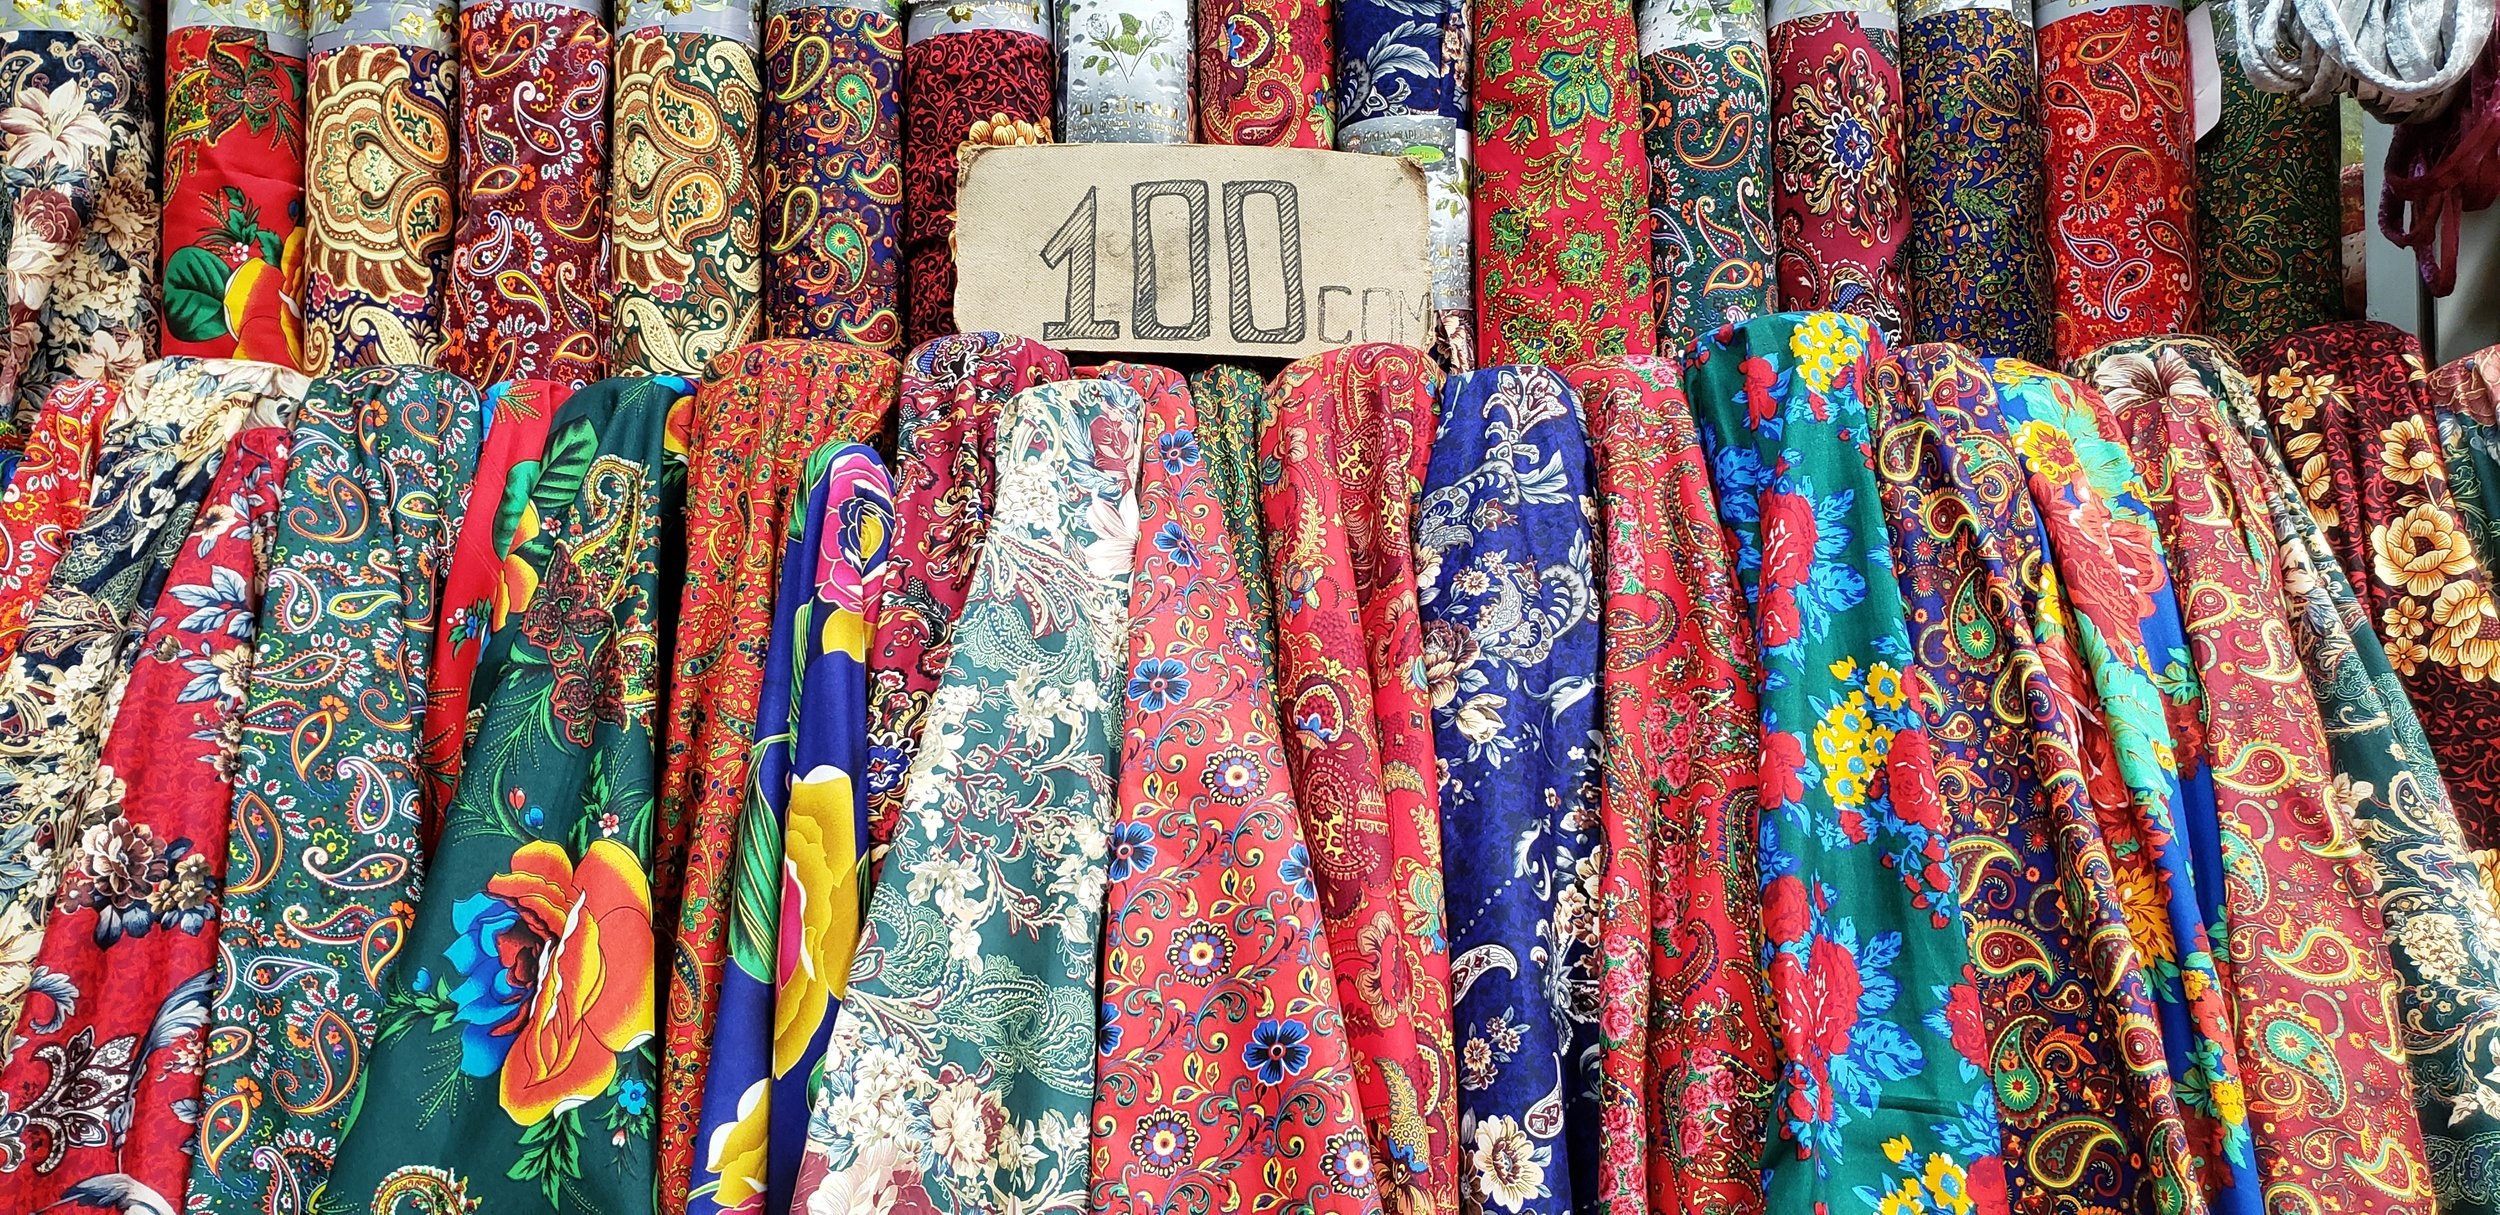 Some fabrics at the local textile bazaar.